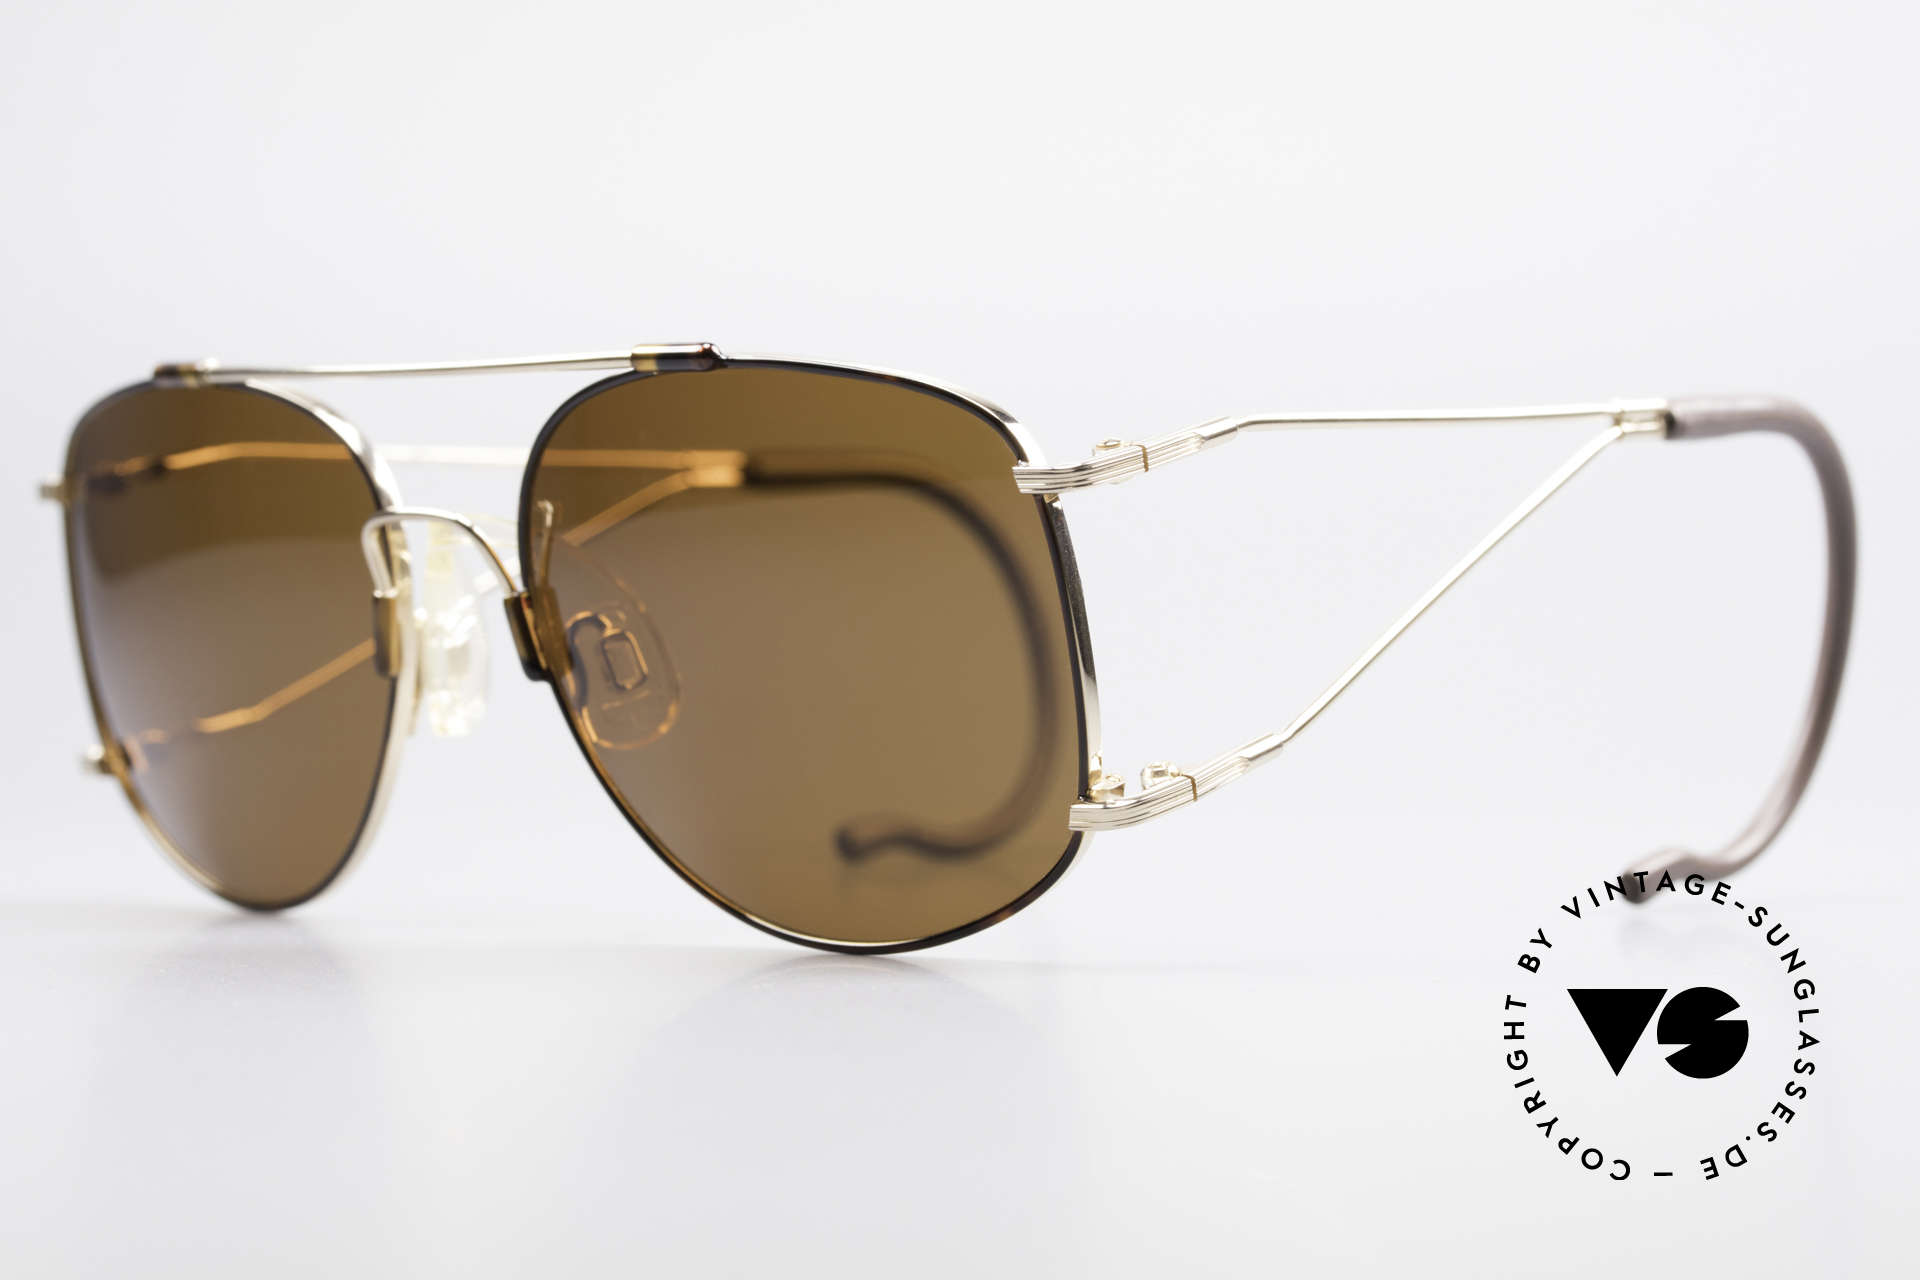 Neostyle Sunsport 1501 Titanflex Vintage Sunglasses, brilliant TITANFLEX frame: flexible, durable, light, Made for Men